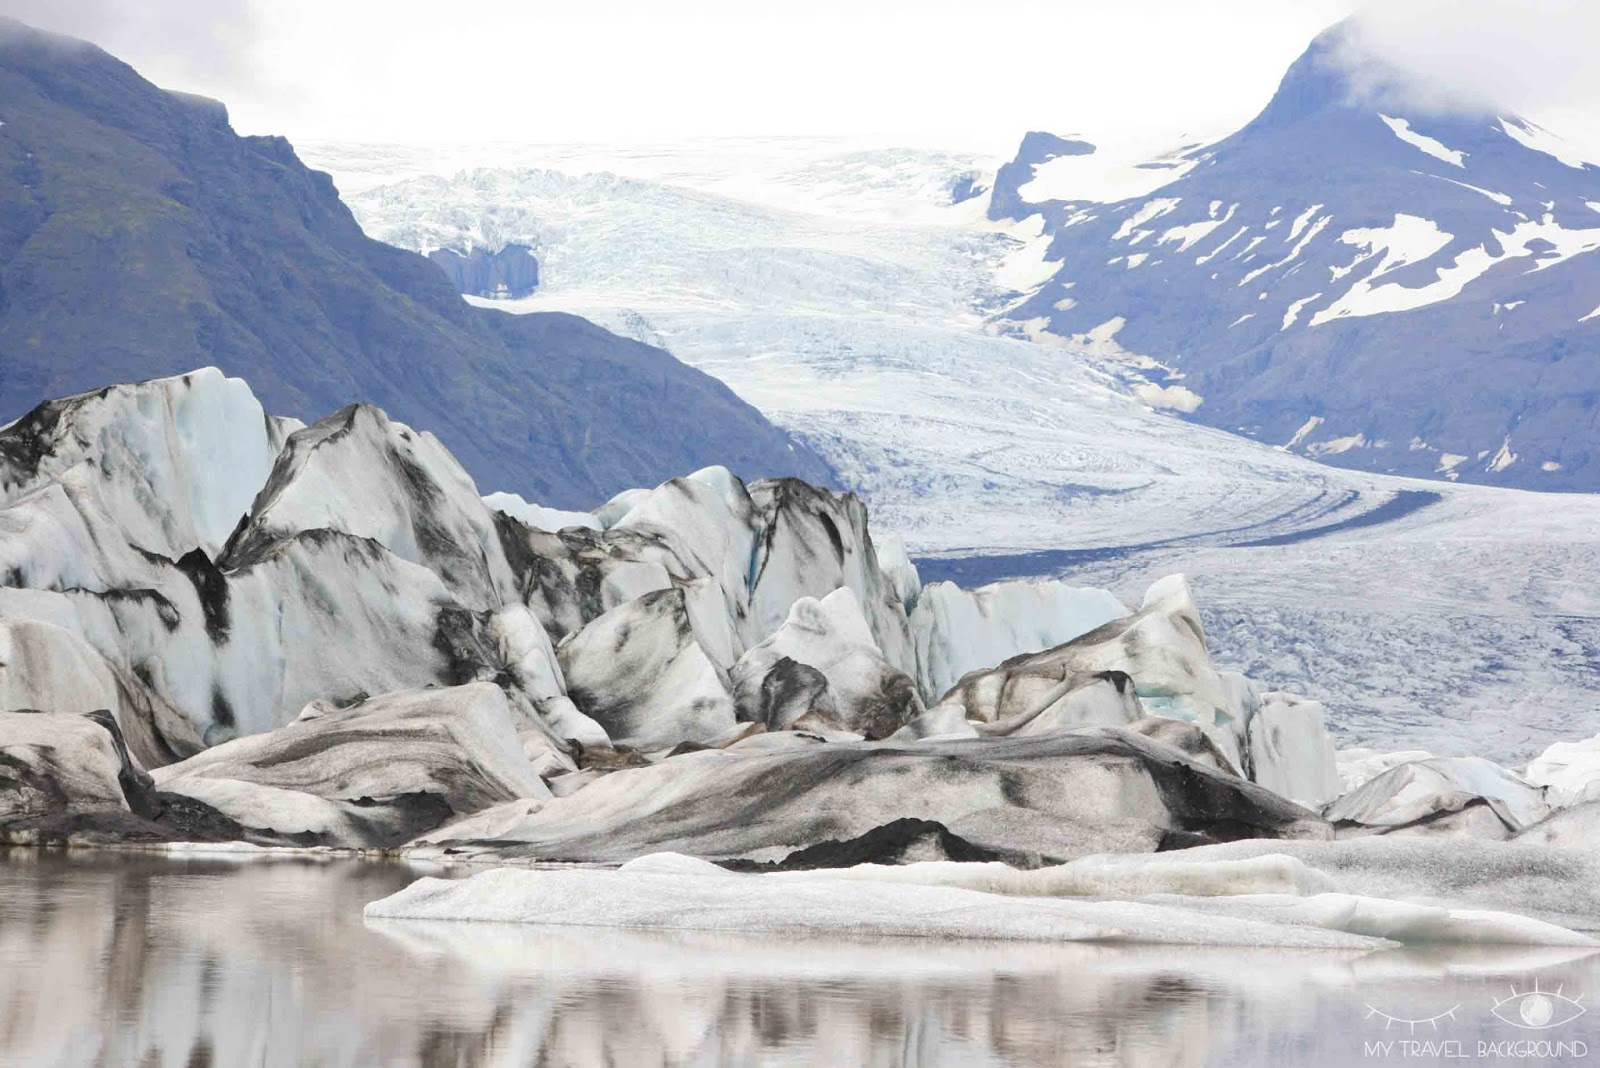 My Travel Background : Glaciers et icebergs dans le Sud de l'Islande - Heinabergsjökull